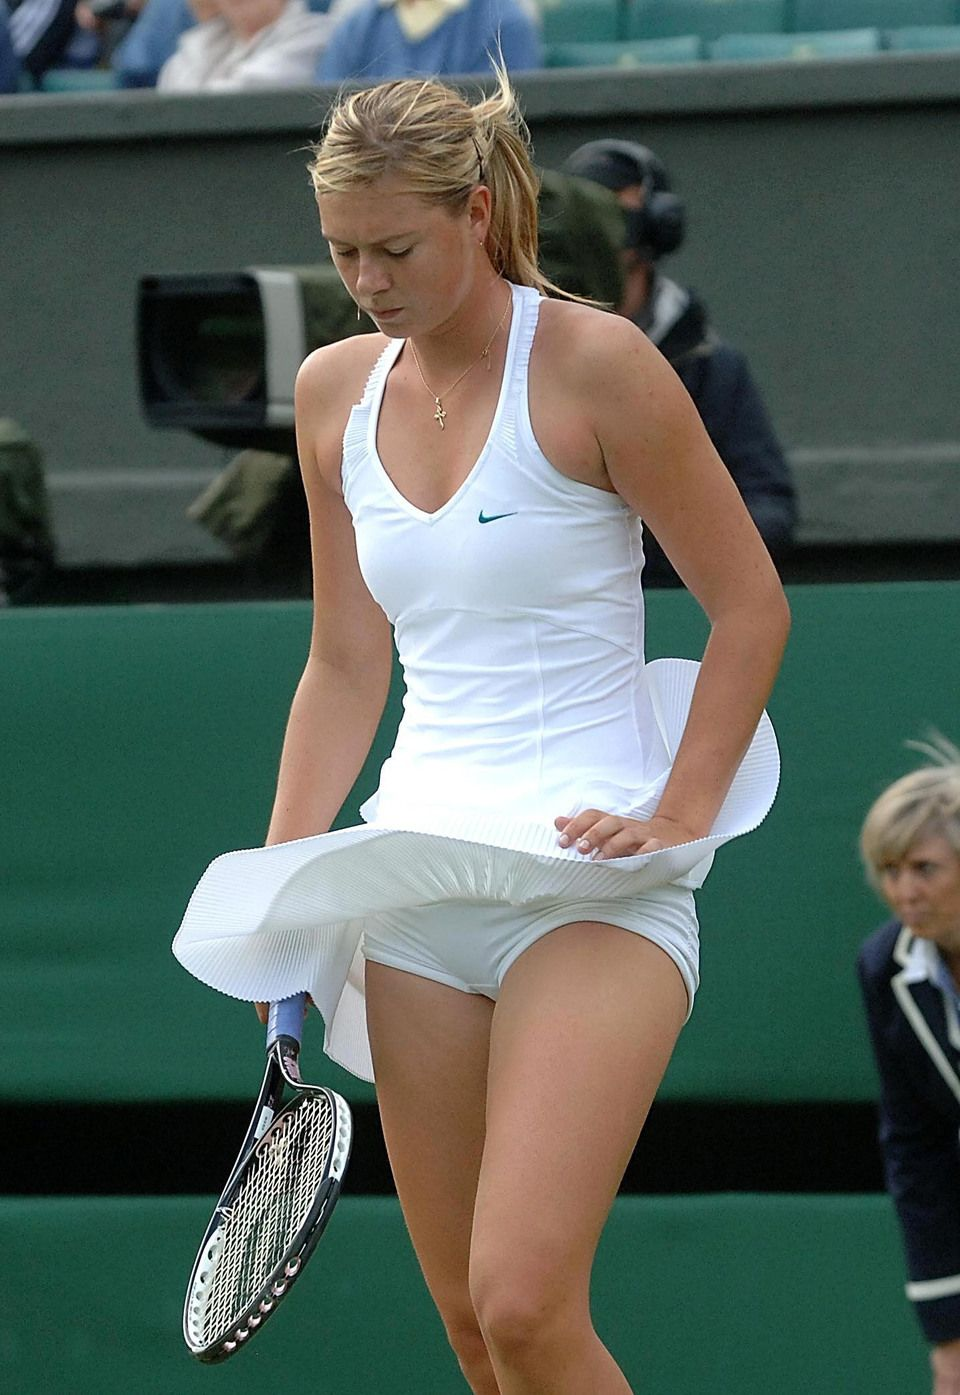 tennis girls hot photo nude